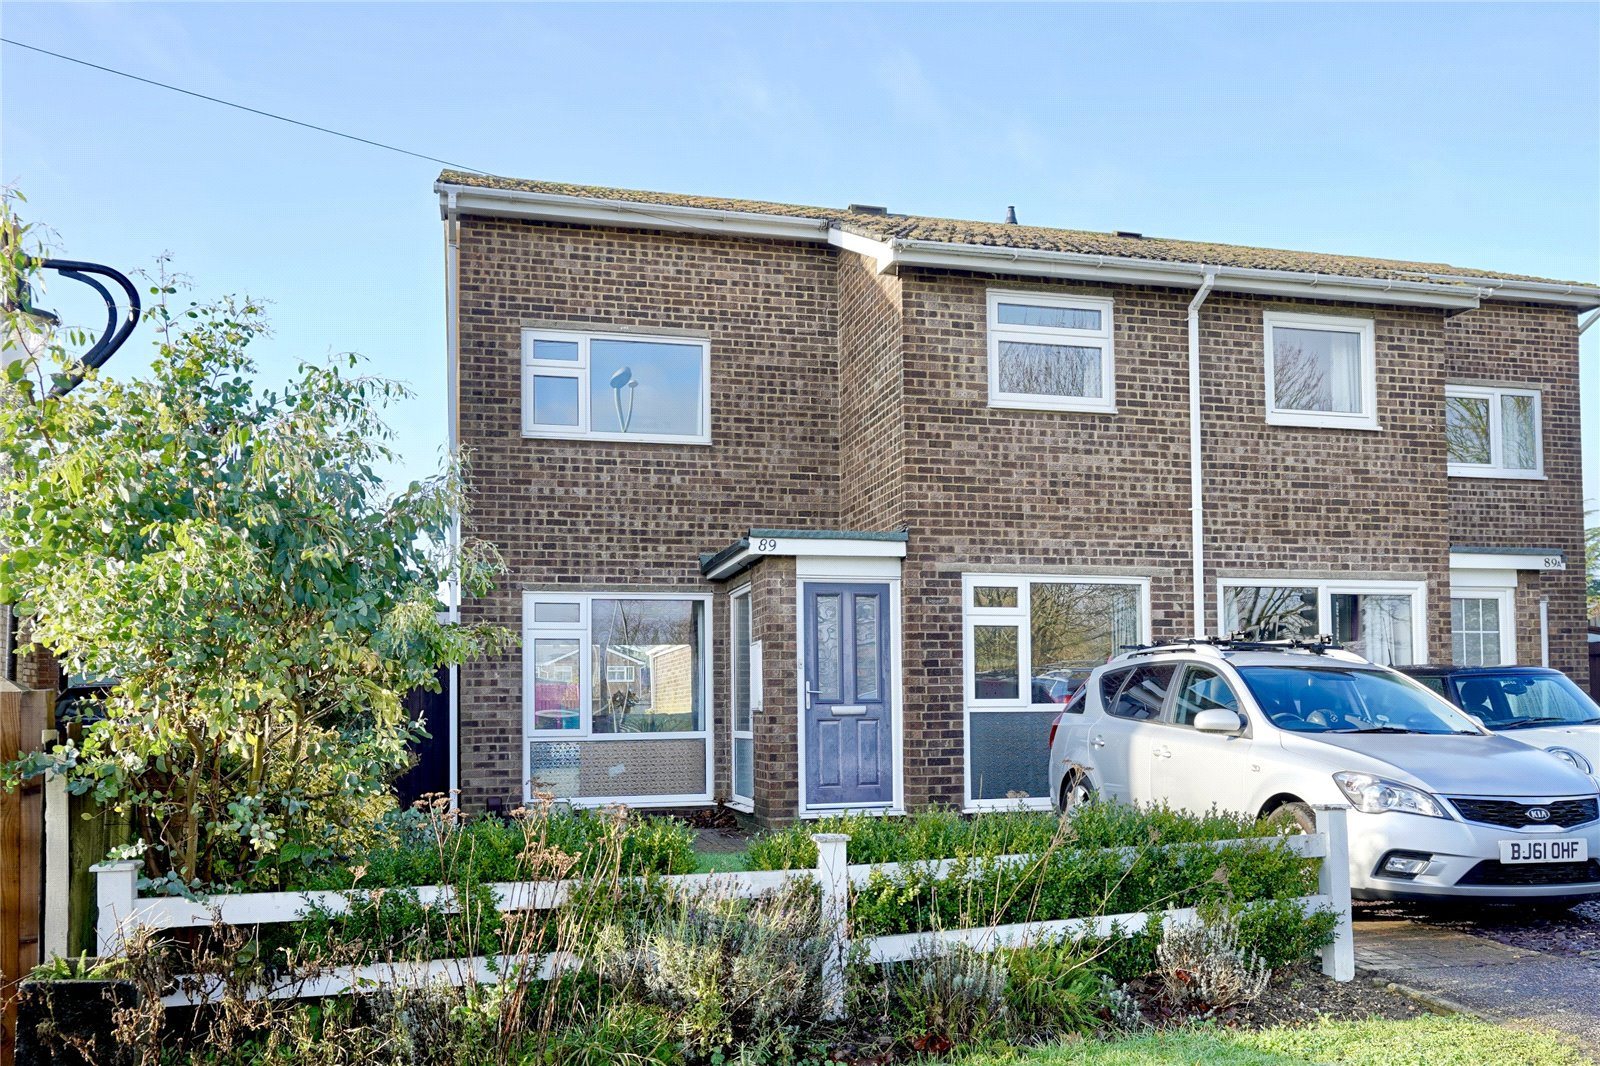 3 bed house for sale in Crosshall Road, Eaton Ford - Property Image 1